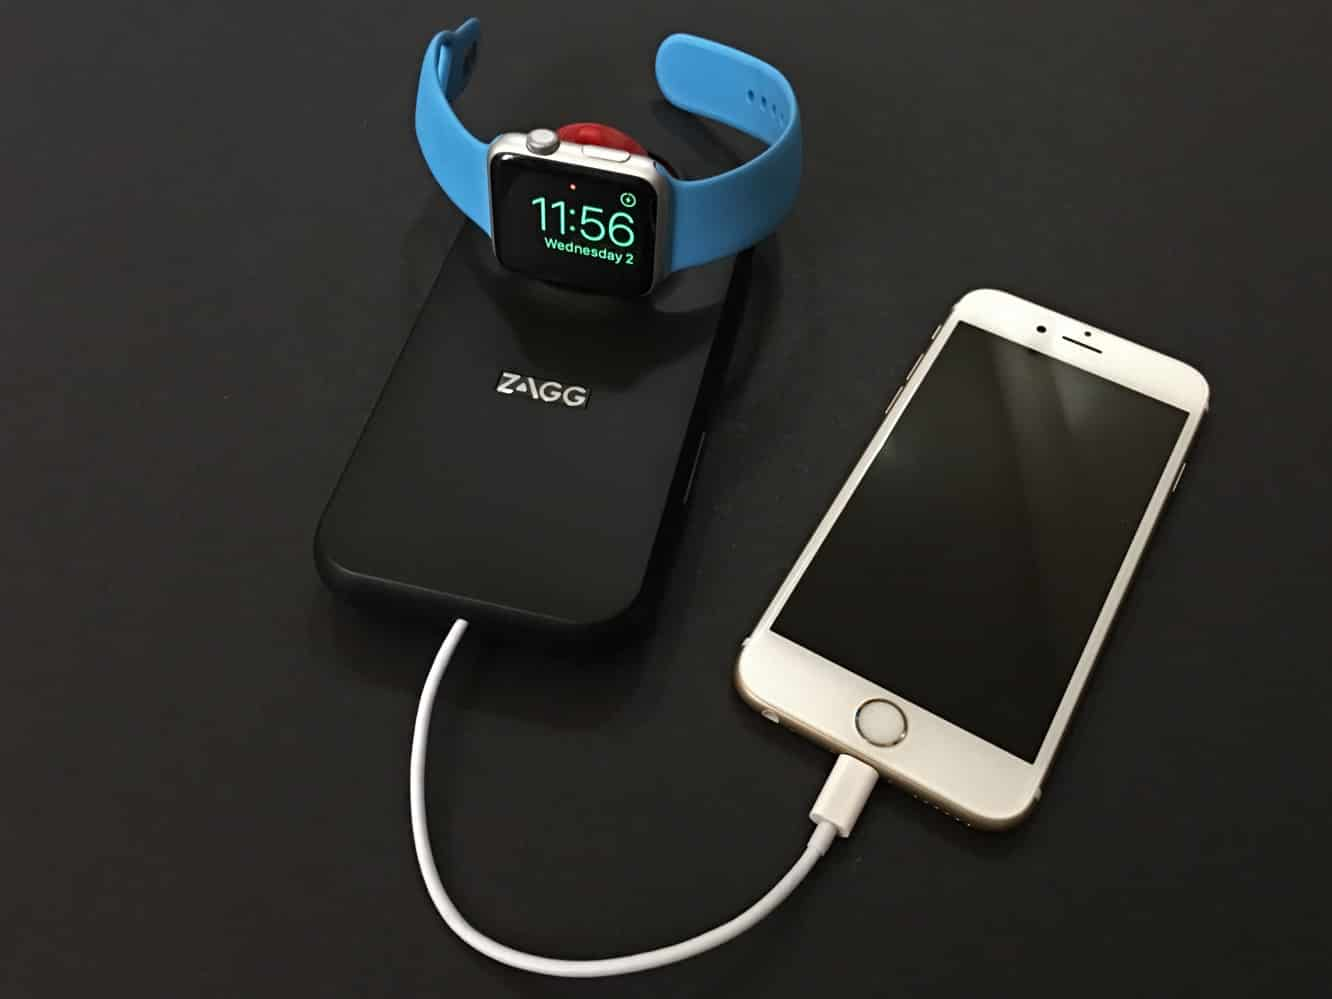 Review: Zagg Mobile Charging Station